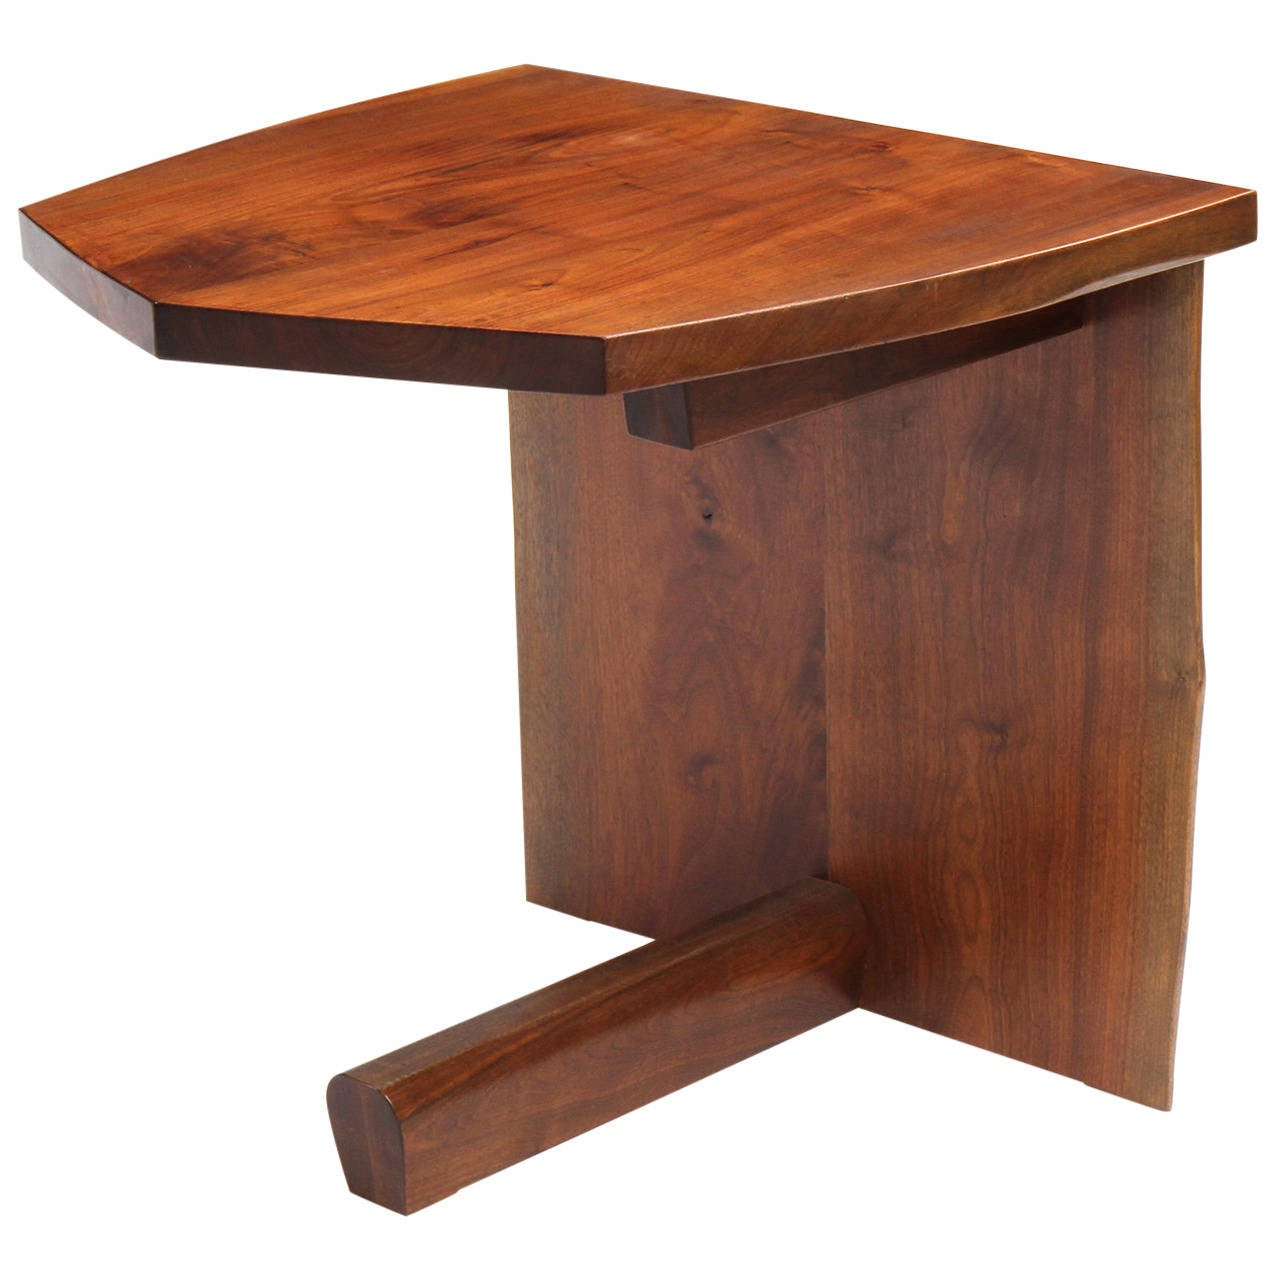 Unique end table by george nakashima at 1stdibs for Unique side tables